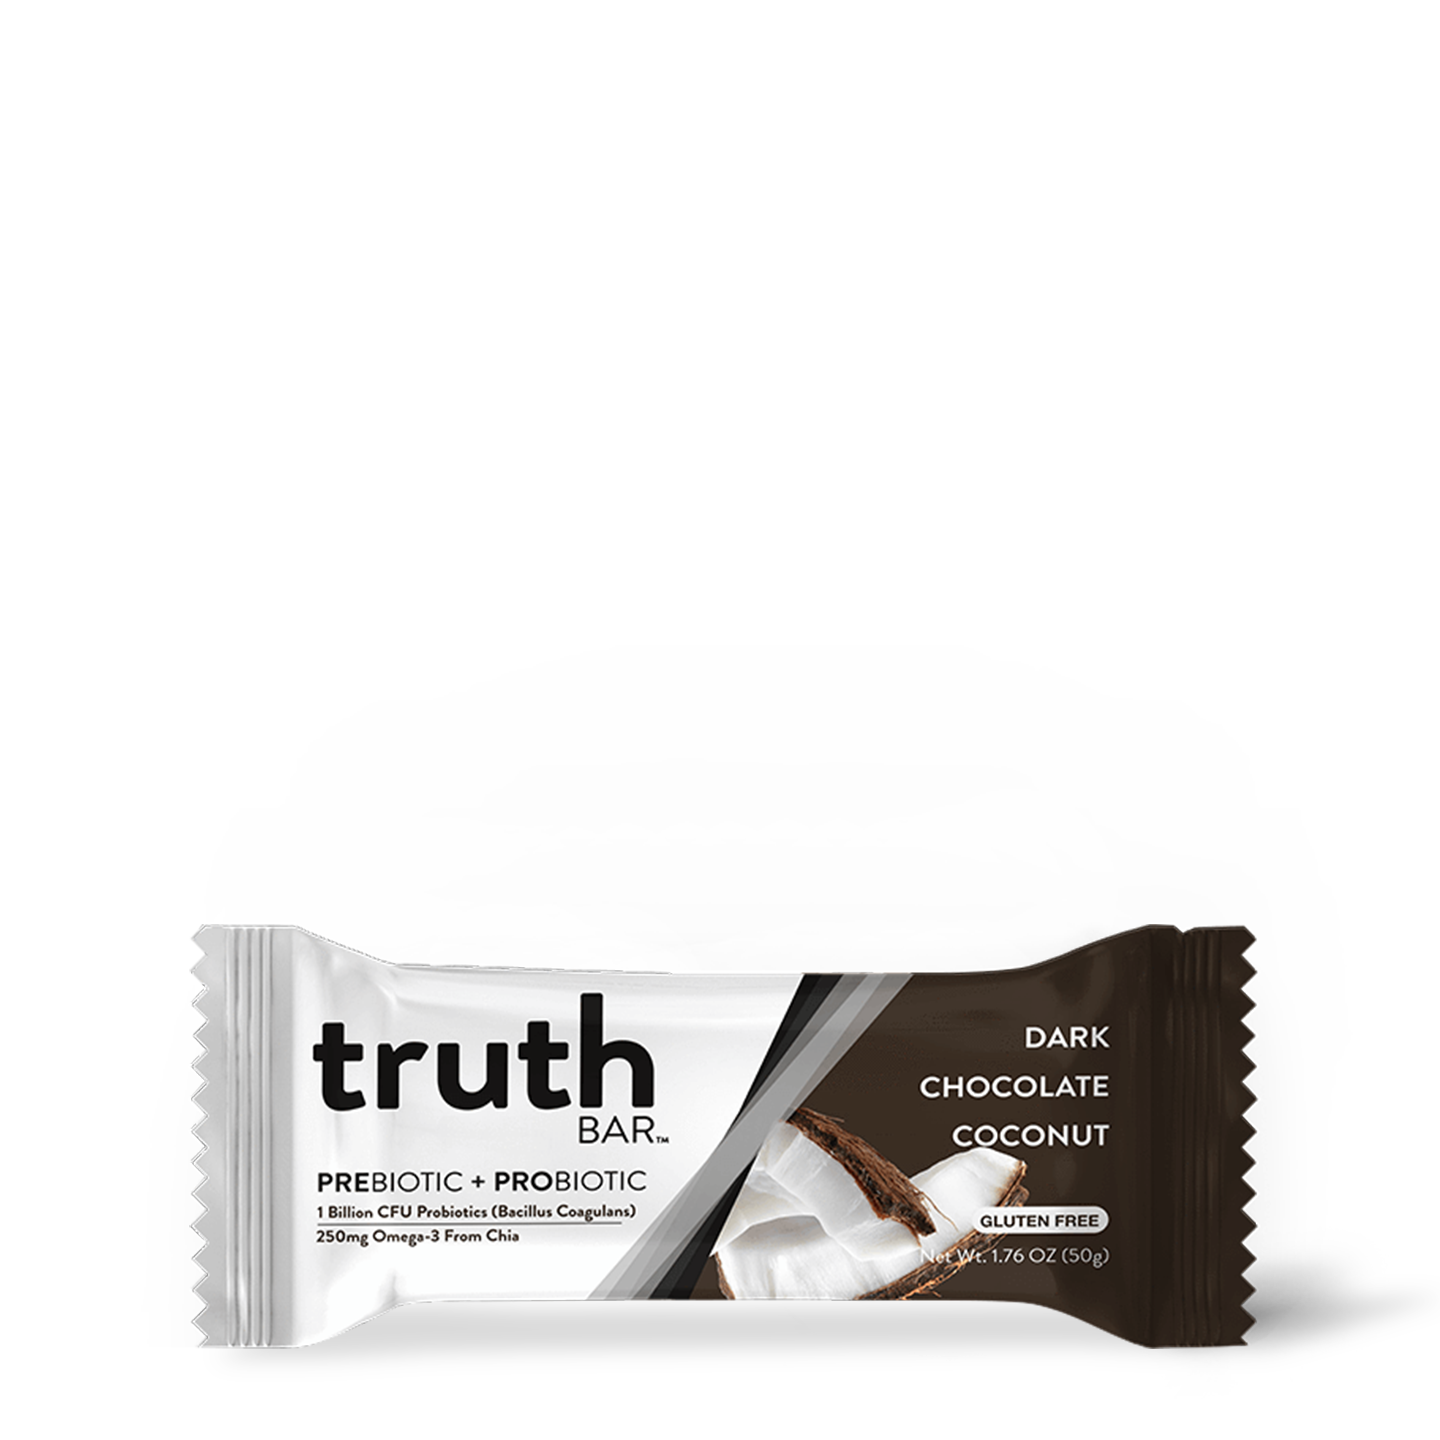 Dark Chocolate Coconut Truth Bar product image